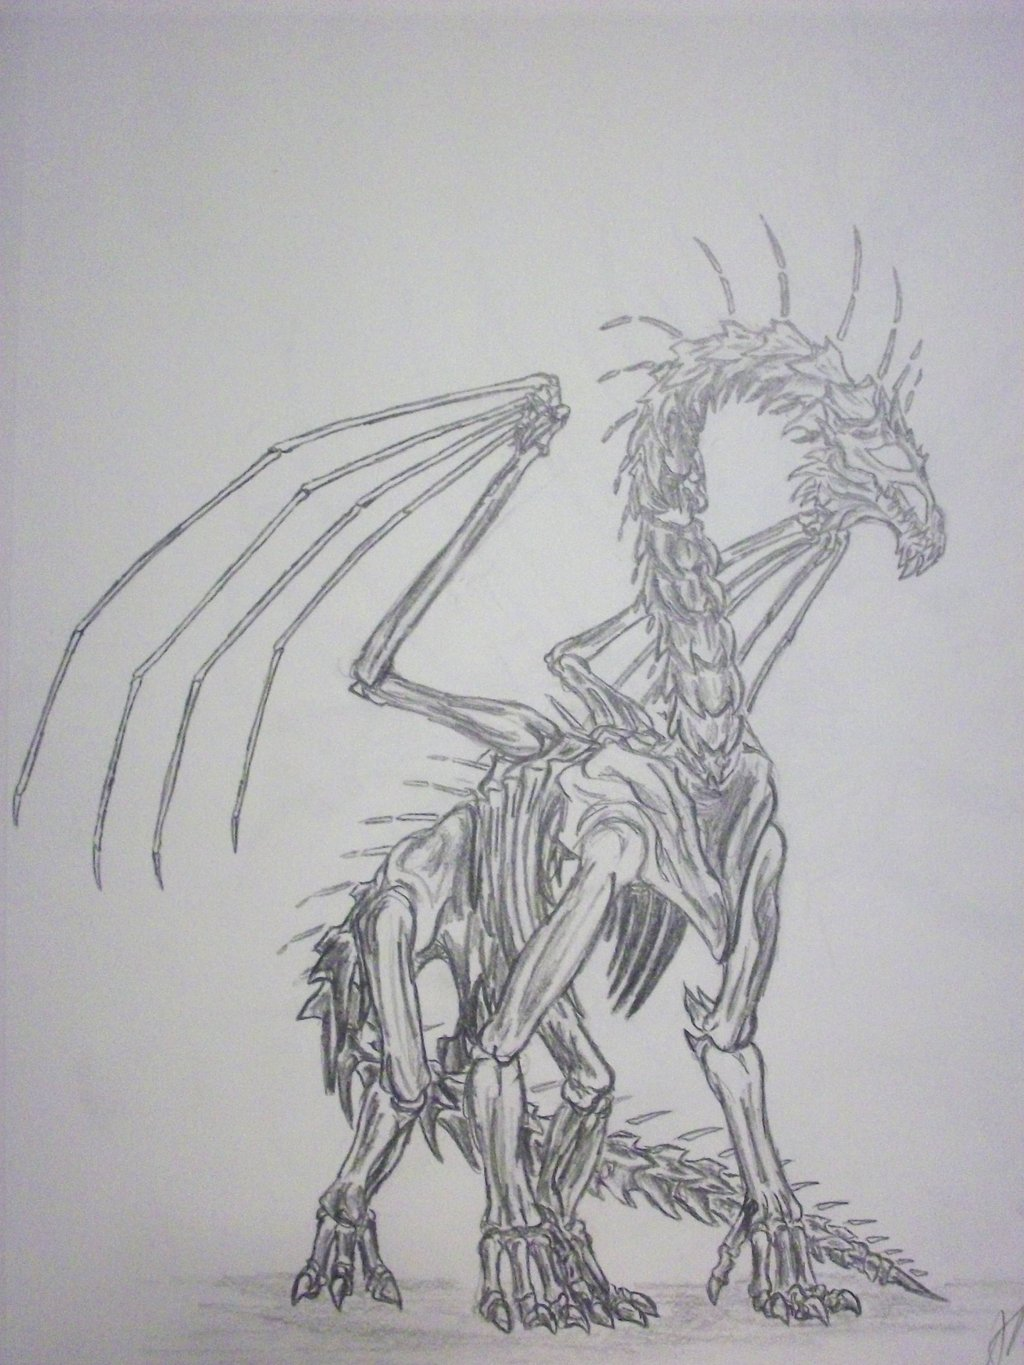 Drawn sleleton dragon Dragon Dragon on DeviantArt RegalDragon